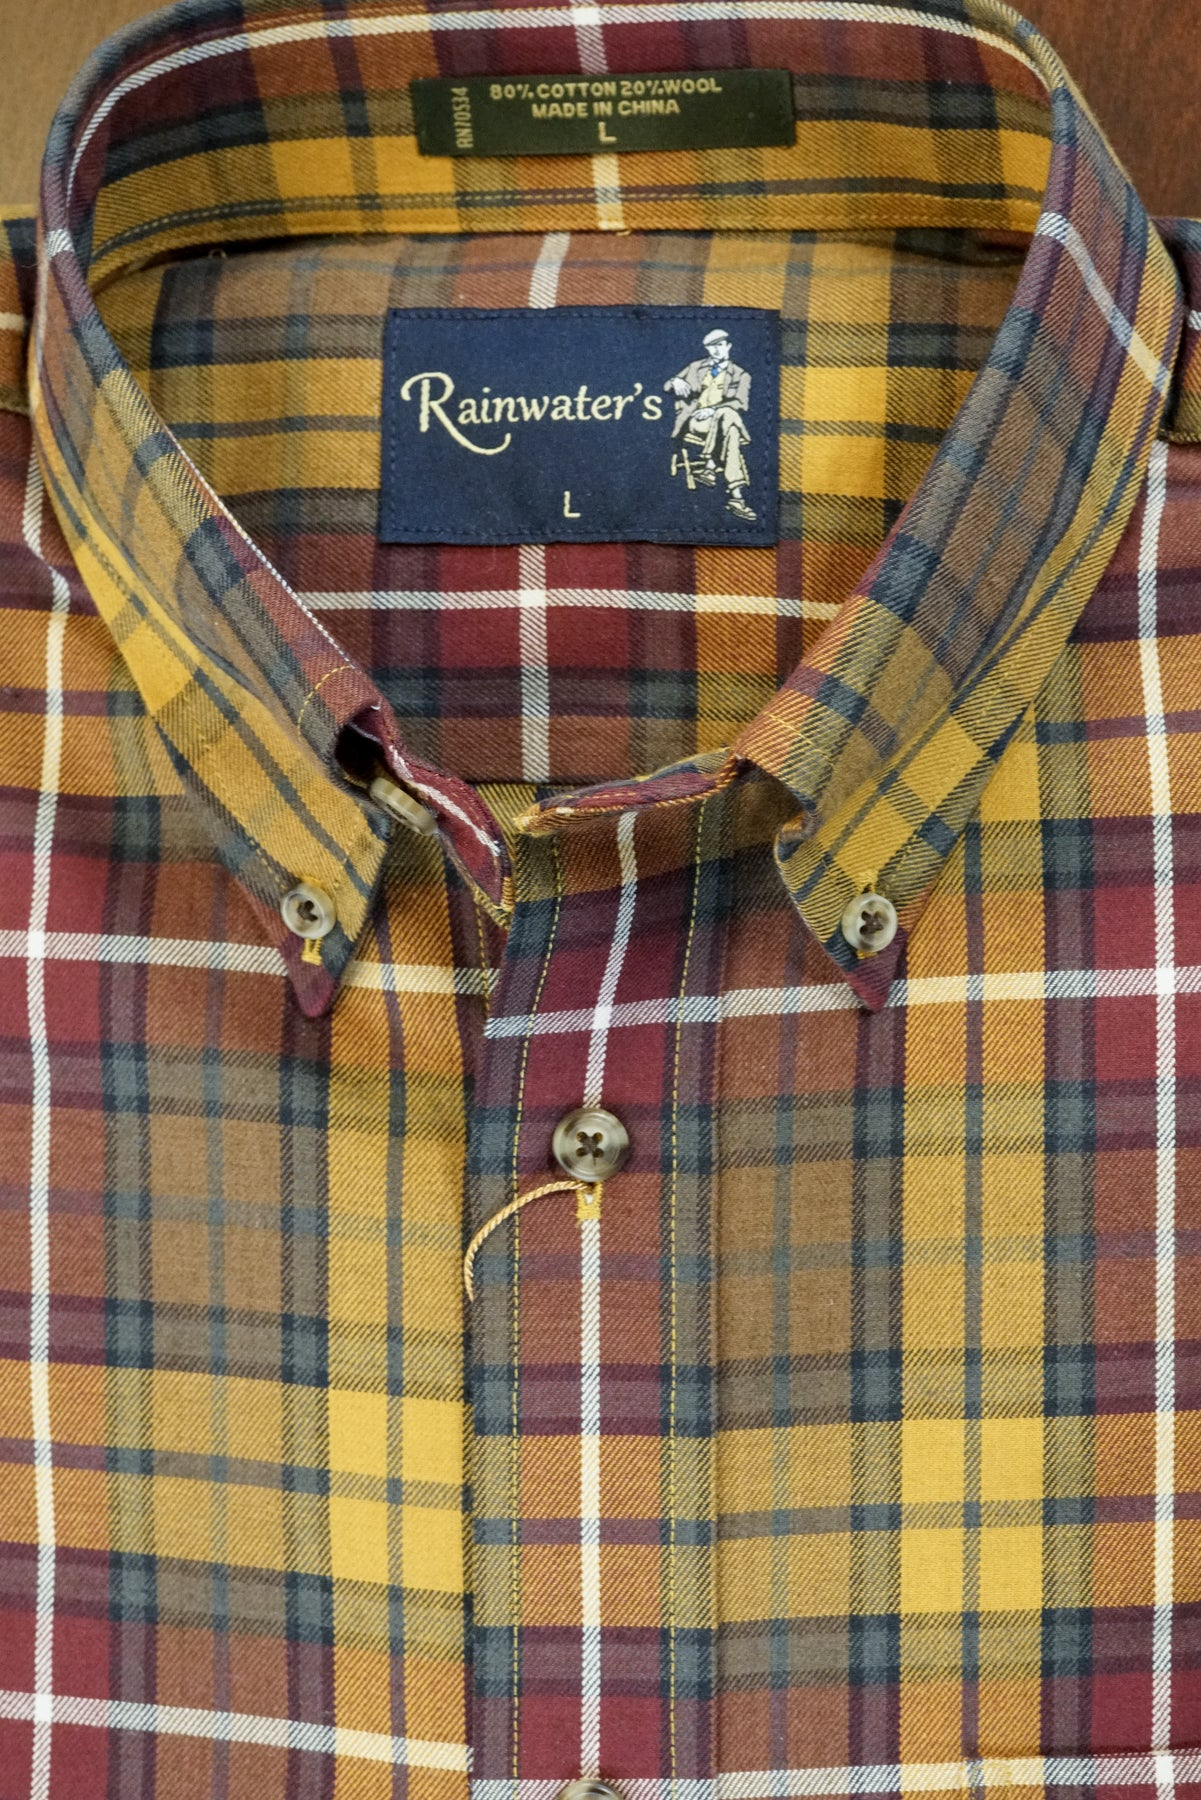 Burgundy and Gold Plaid Button Down in Cotton & Wool by Rainwater's - Rainwater's Men's Clothing and Tuxedo Rental